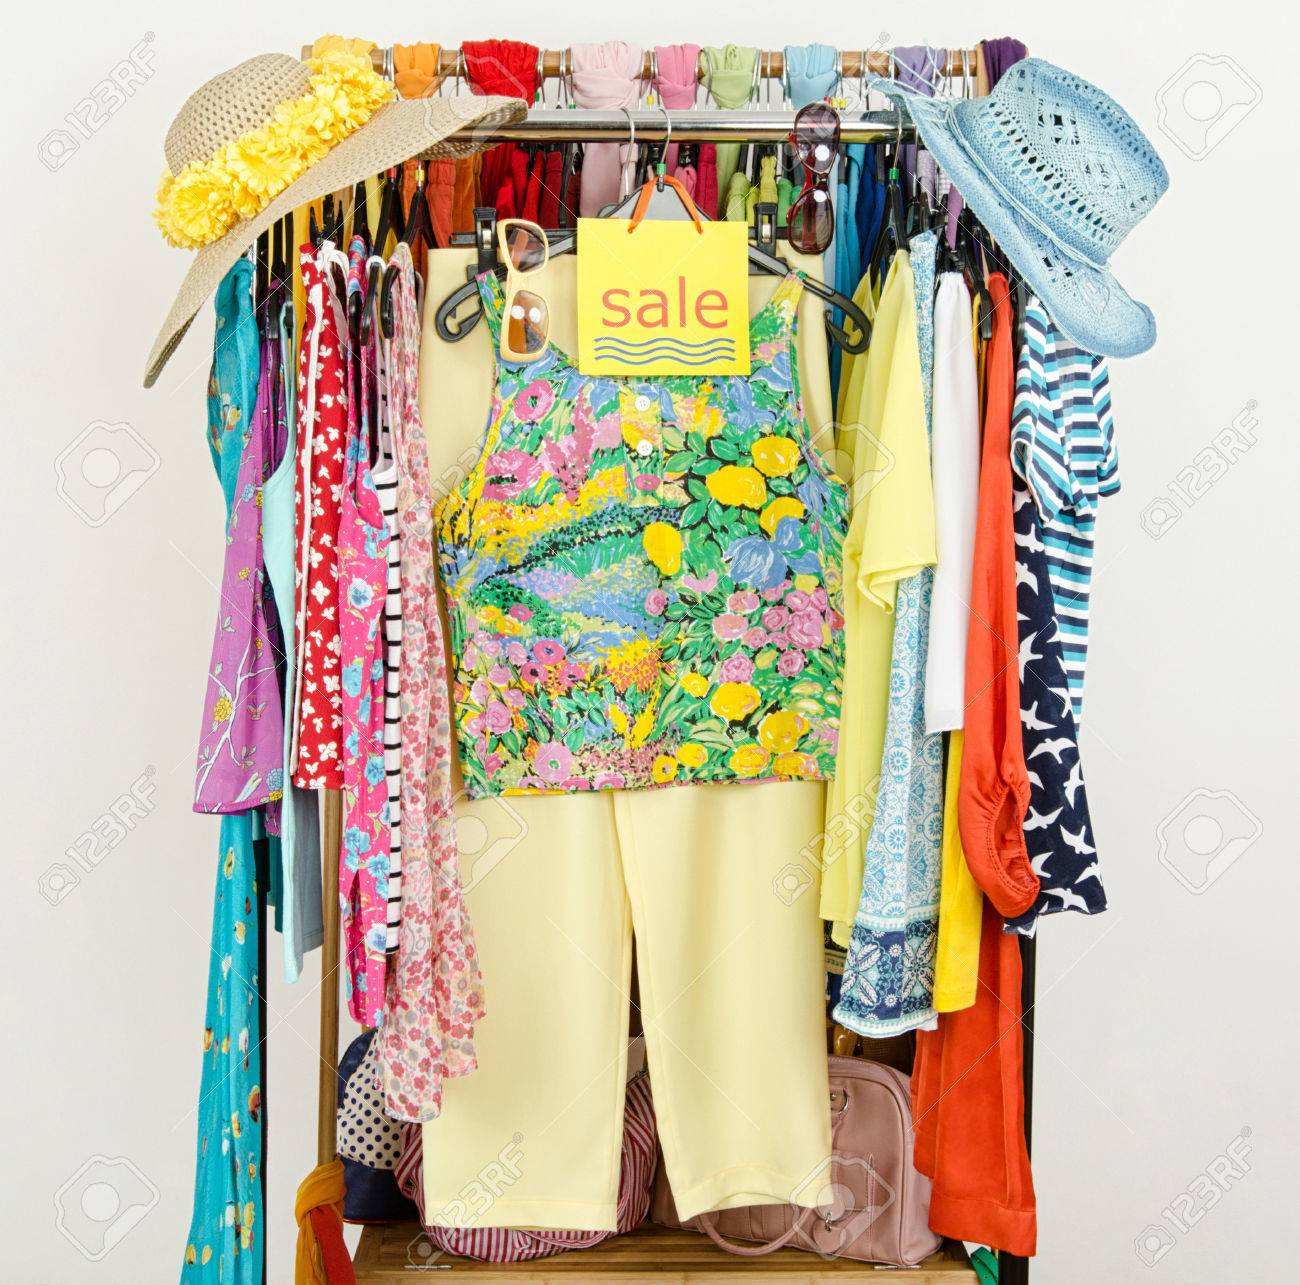 Rack With Summer Clothes And Sale Sign Clearance Rack With ...